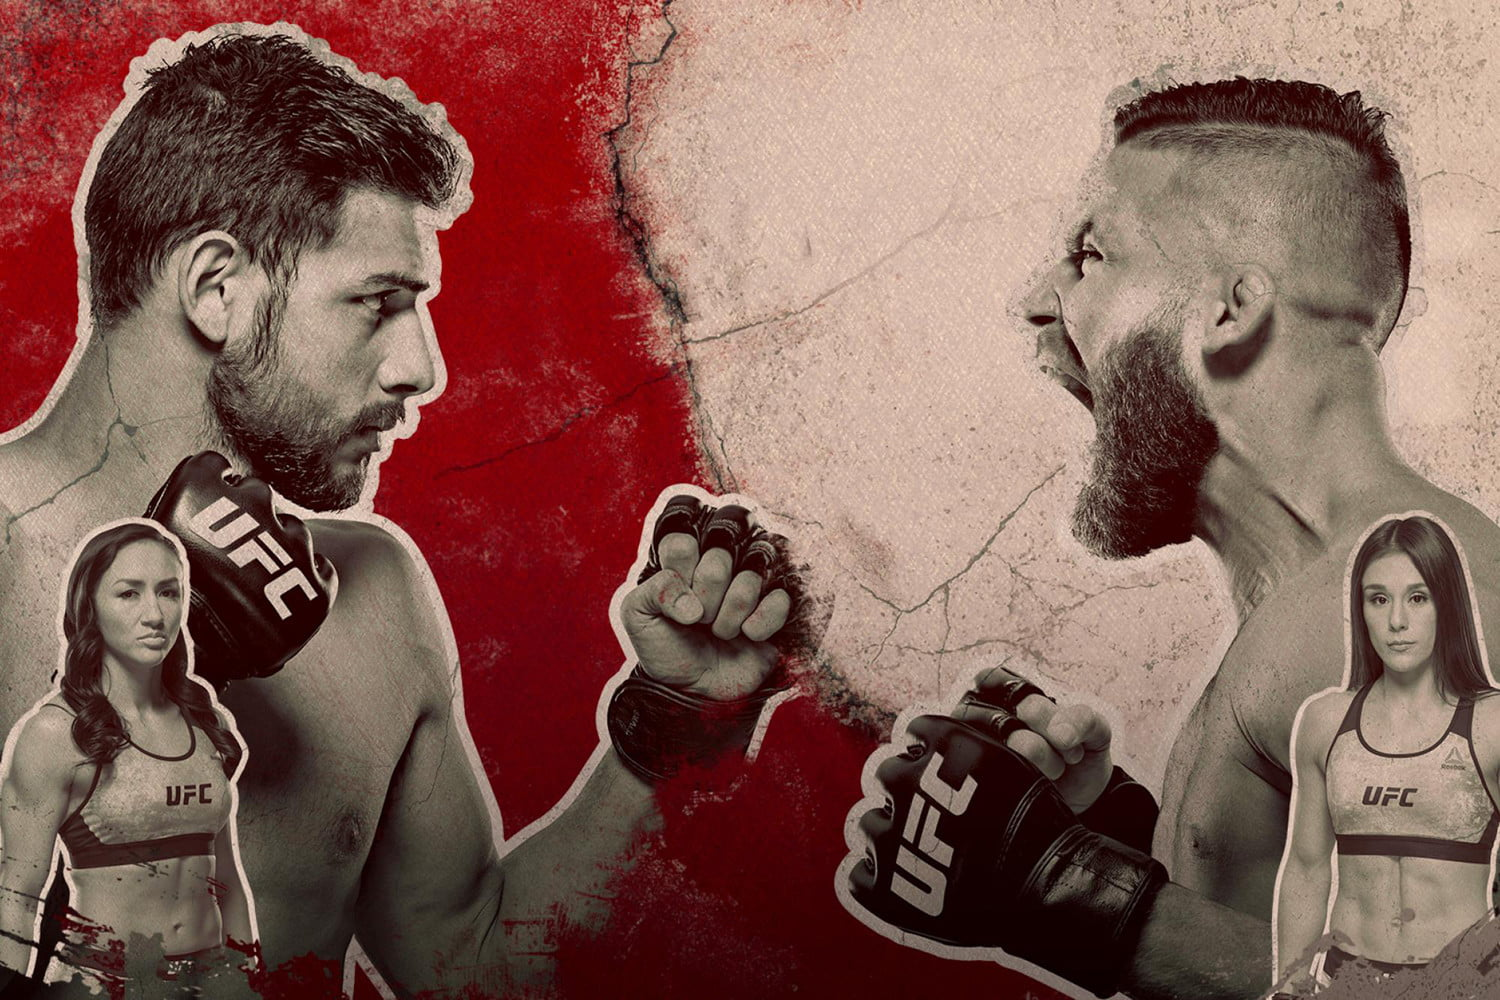 How to watch UFC Fight Night 159: Rodríguez vs. Stephens on ESPN+